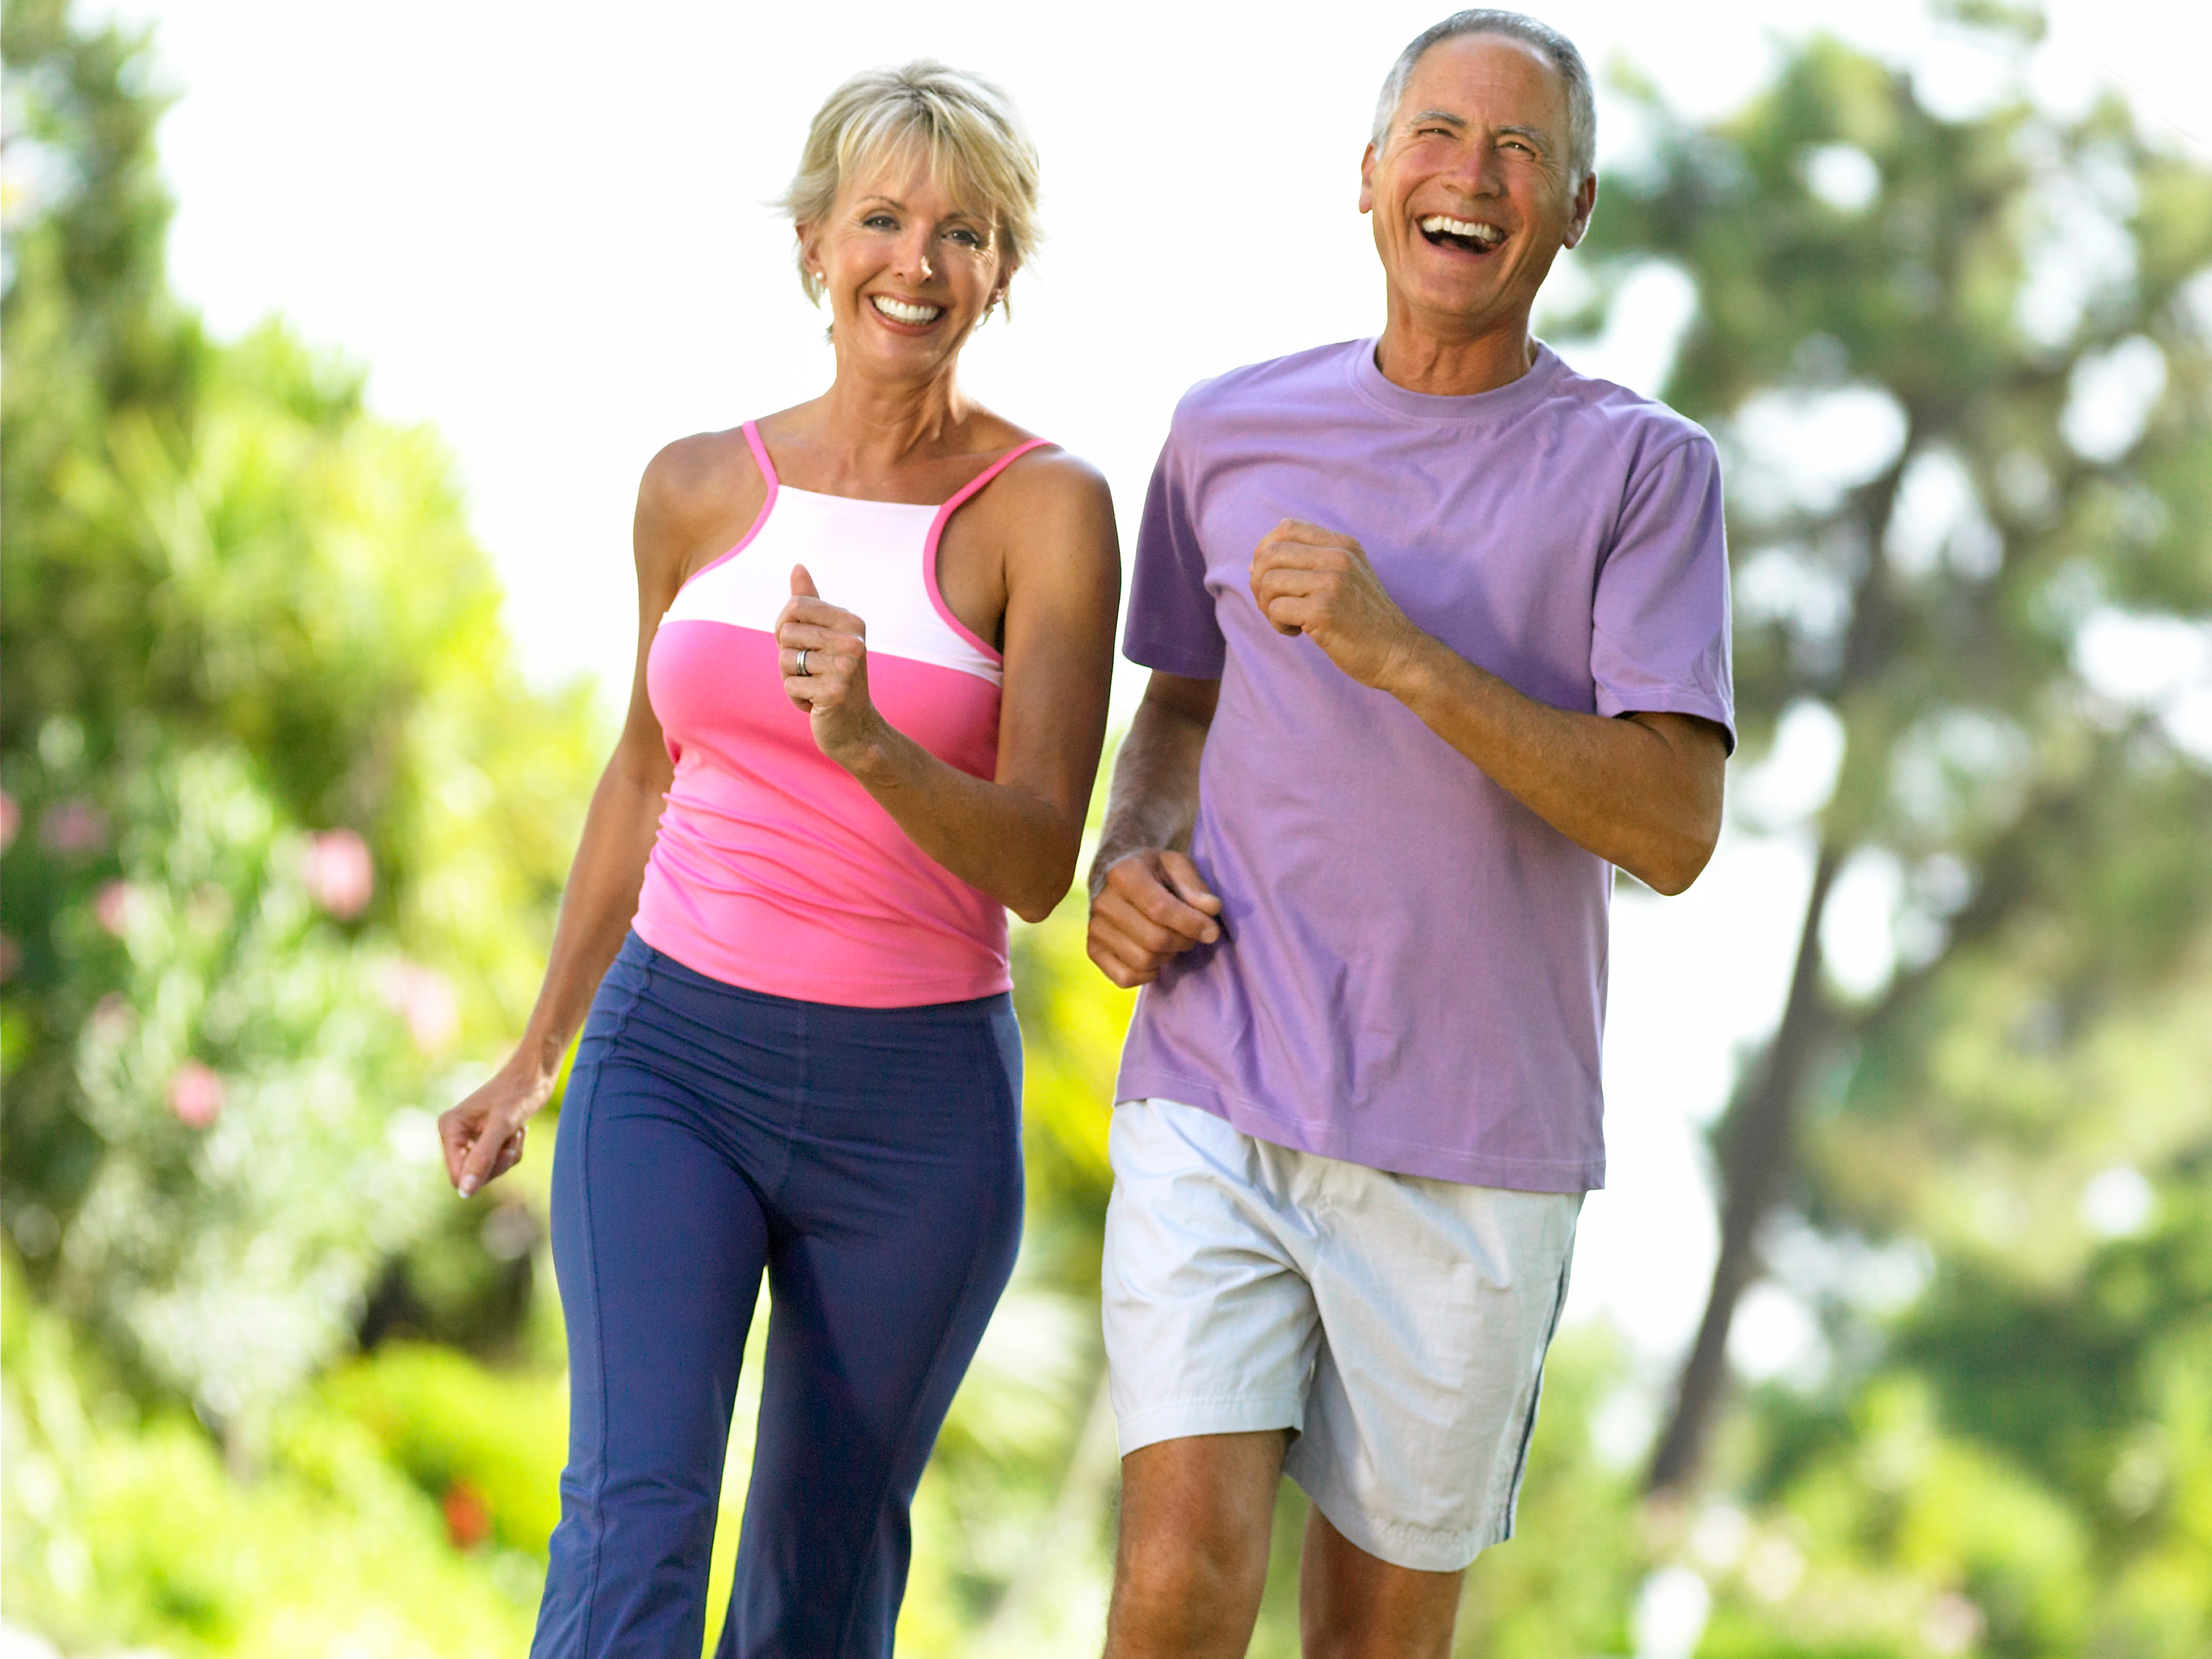 Switch on your muscle-building, anti-aging amplifier